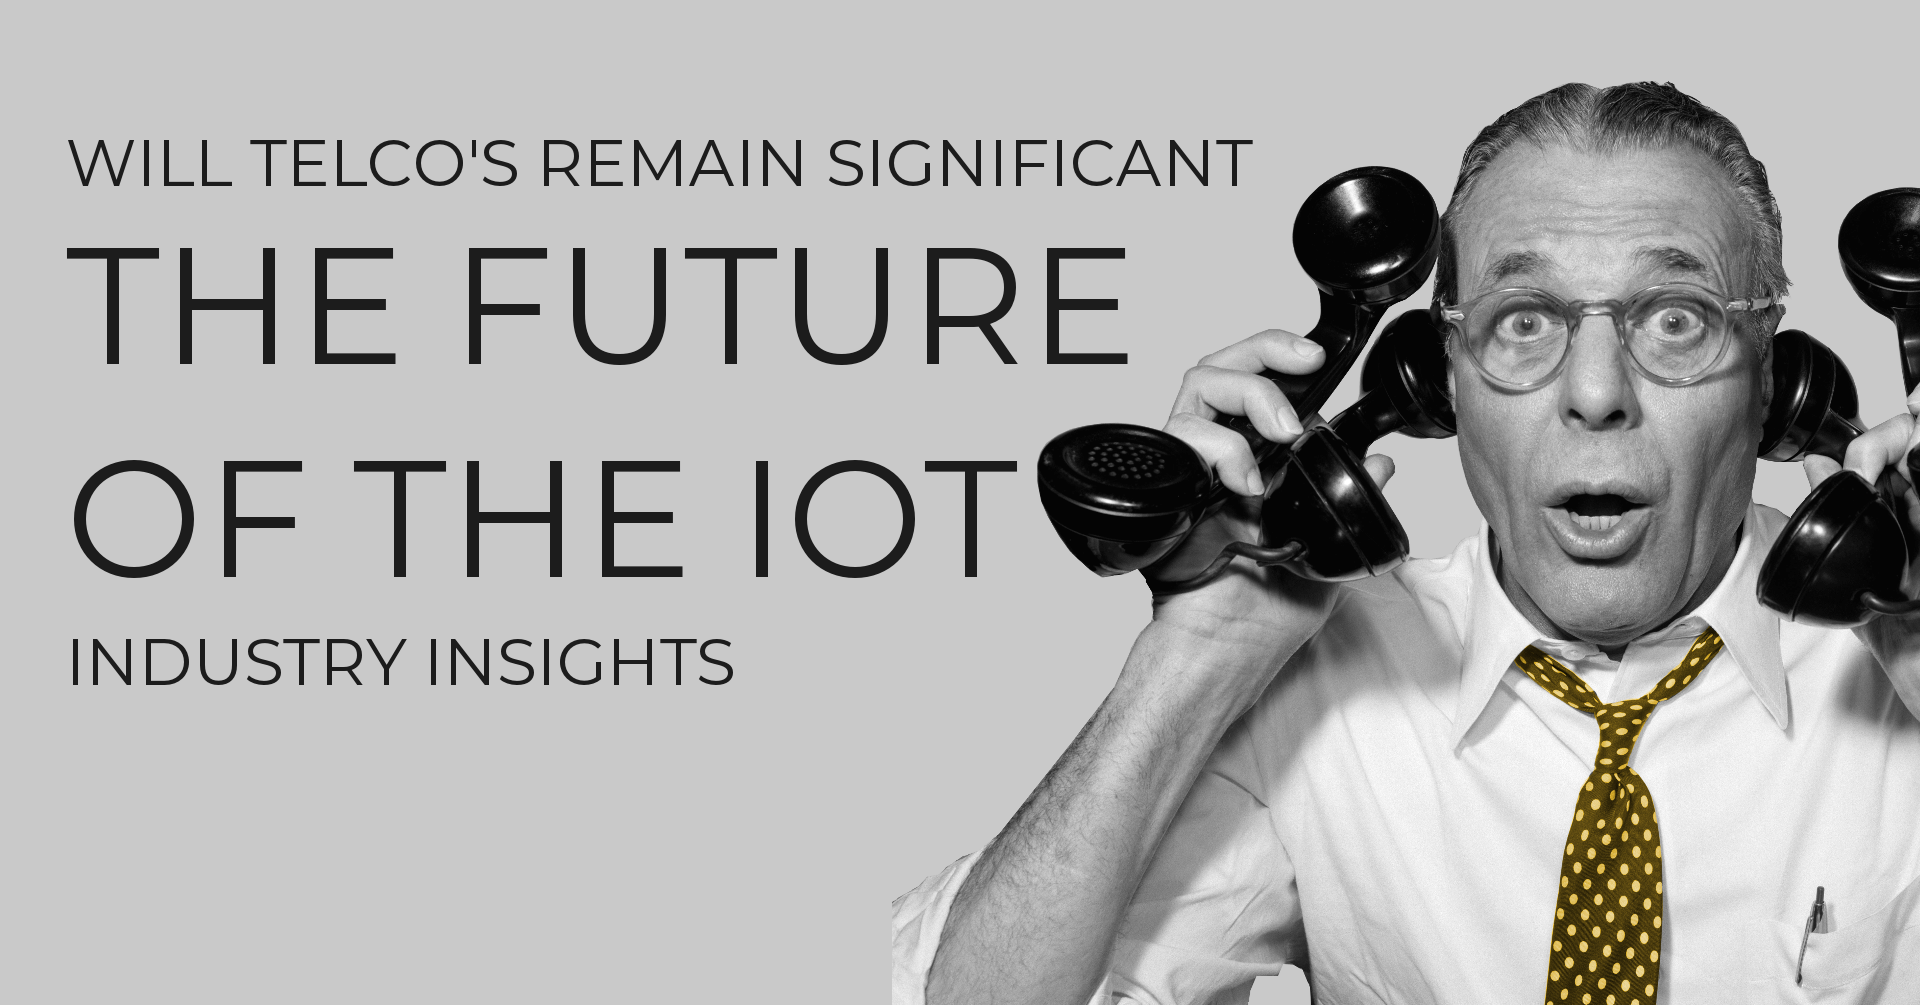 Will Telco's Continue to Remain Significant Players in the Future of the IoT?